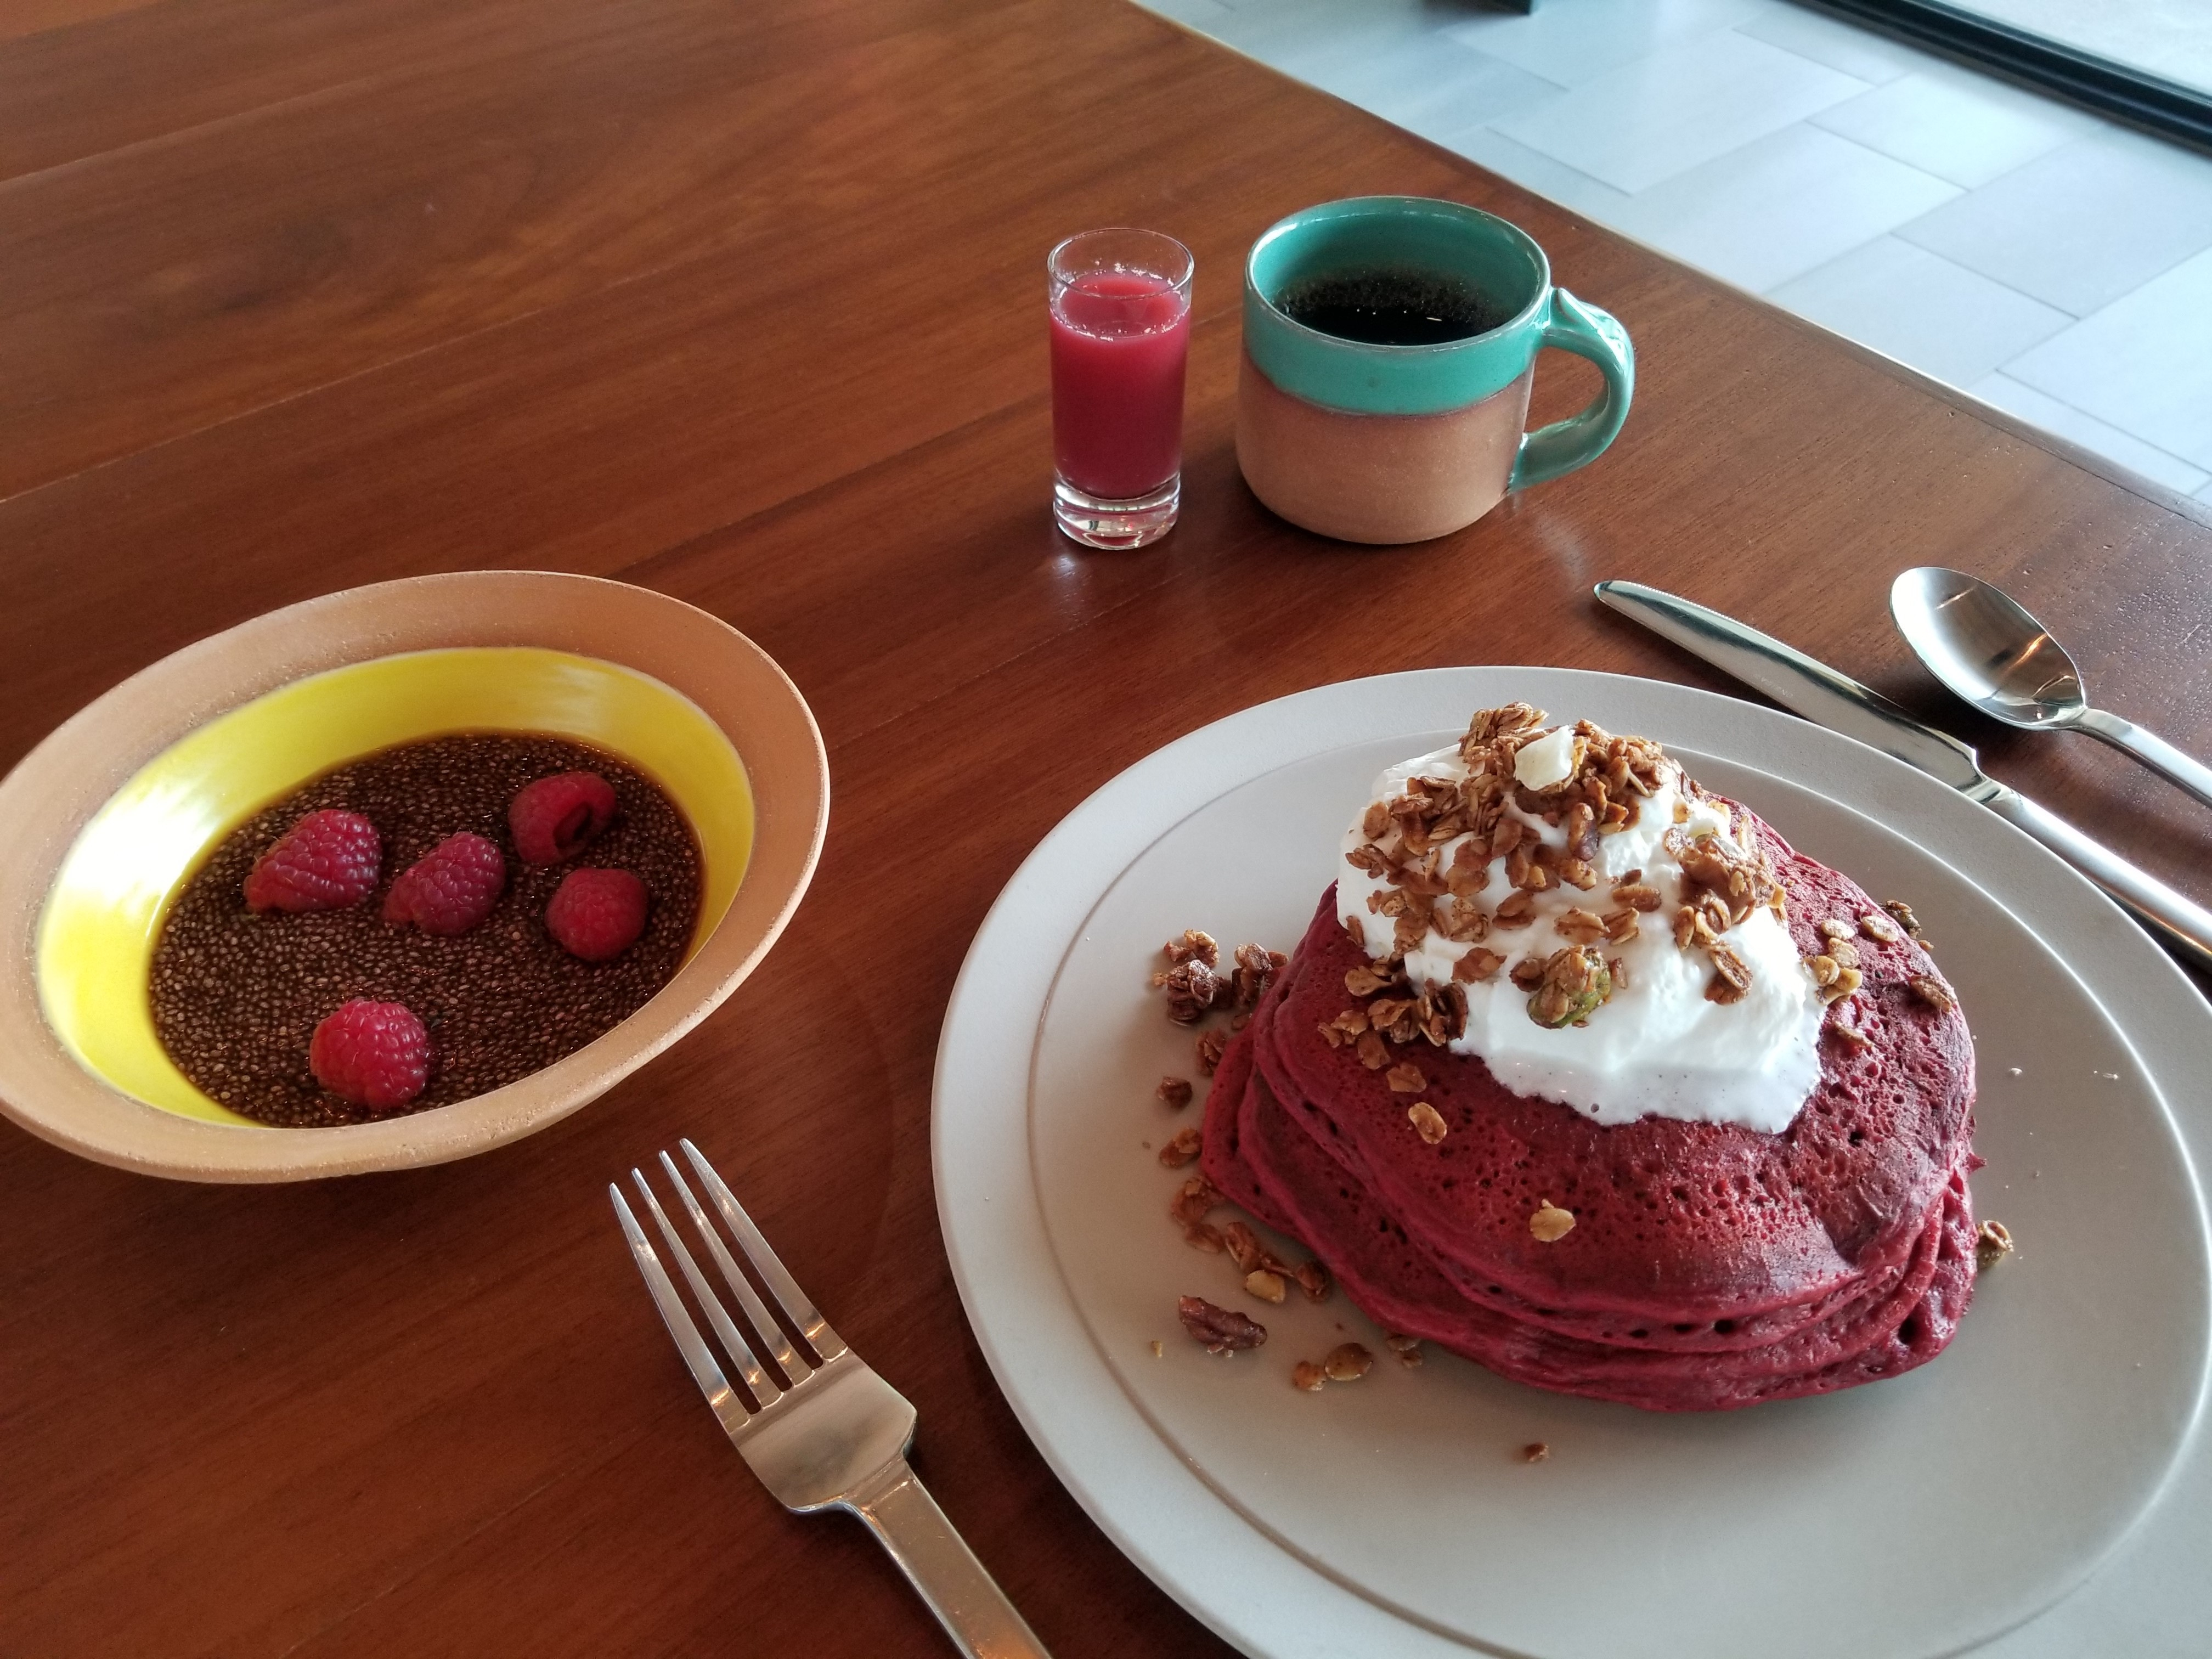 Andaz Scottsdale's Red Velvet Pancakes with Whip Cream and House Made Granola accompanied by Pomegranate Chia Seed Pudding. The hotel is participating in the EAT (RED) SAVE LIVES campaign, and every order of this special breakfast triggers a $3 donation from the hotel that goes directly to (RED)'s fight. (Photo: Business Wire)